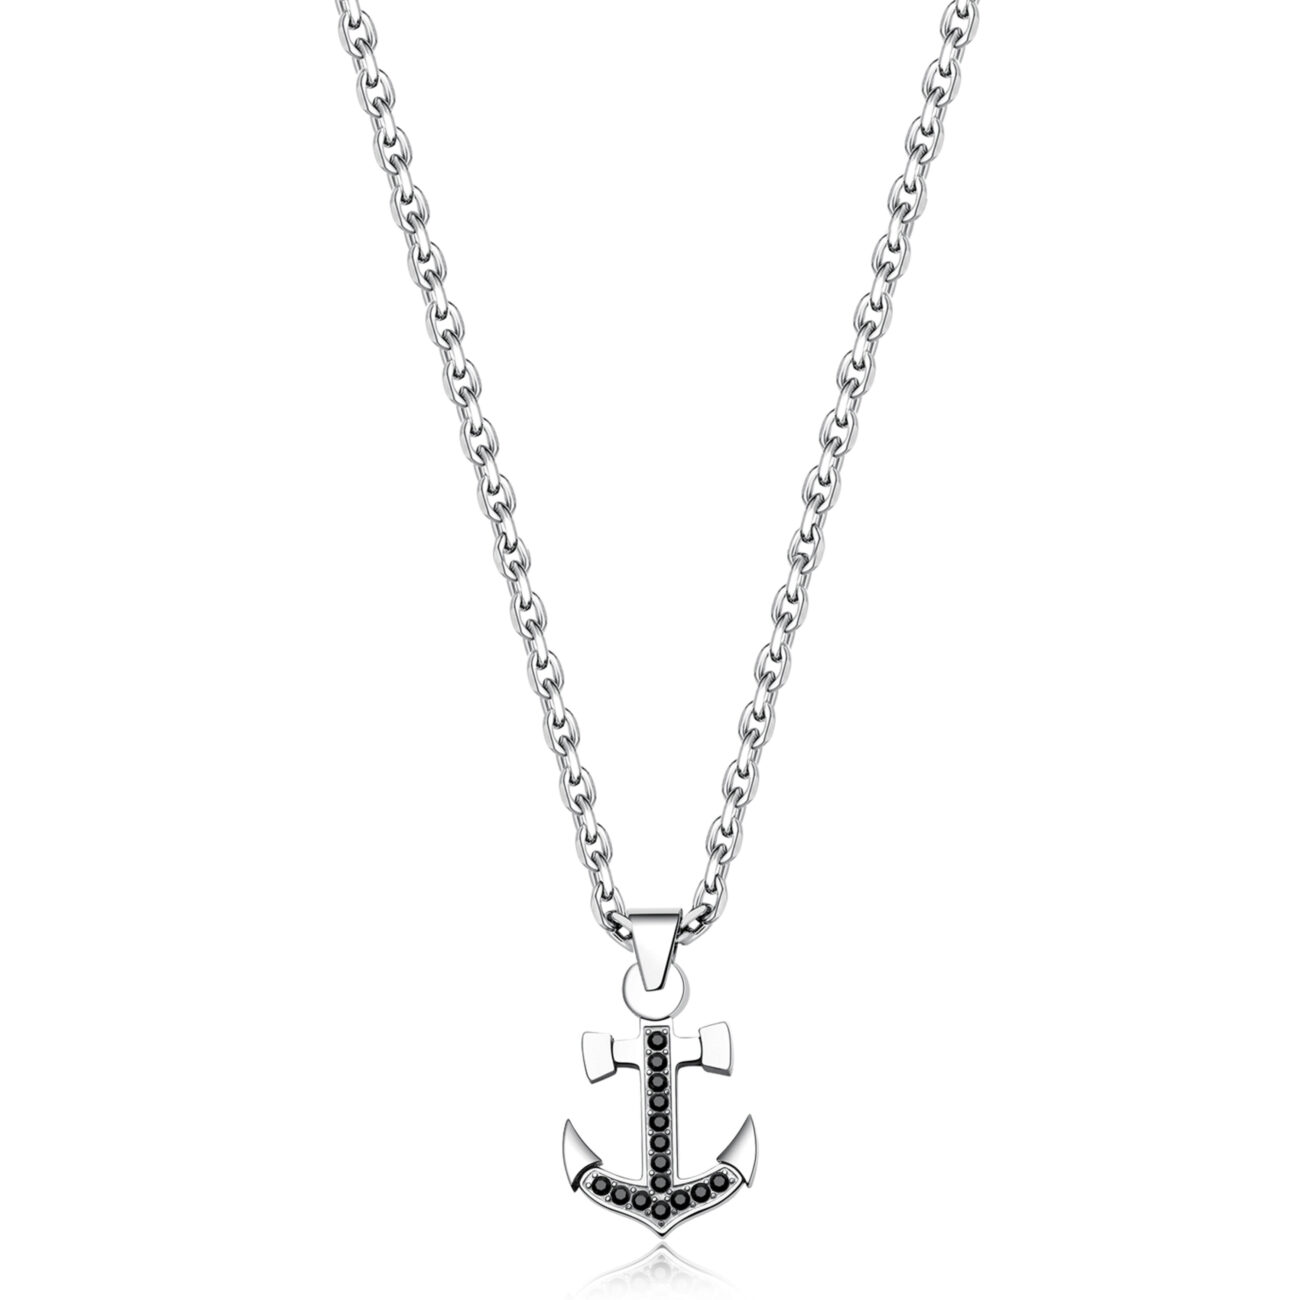 316L stainless steel necklace with small anchor pendant and Swarovski® Elements crystals.